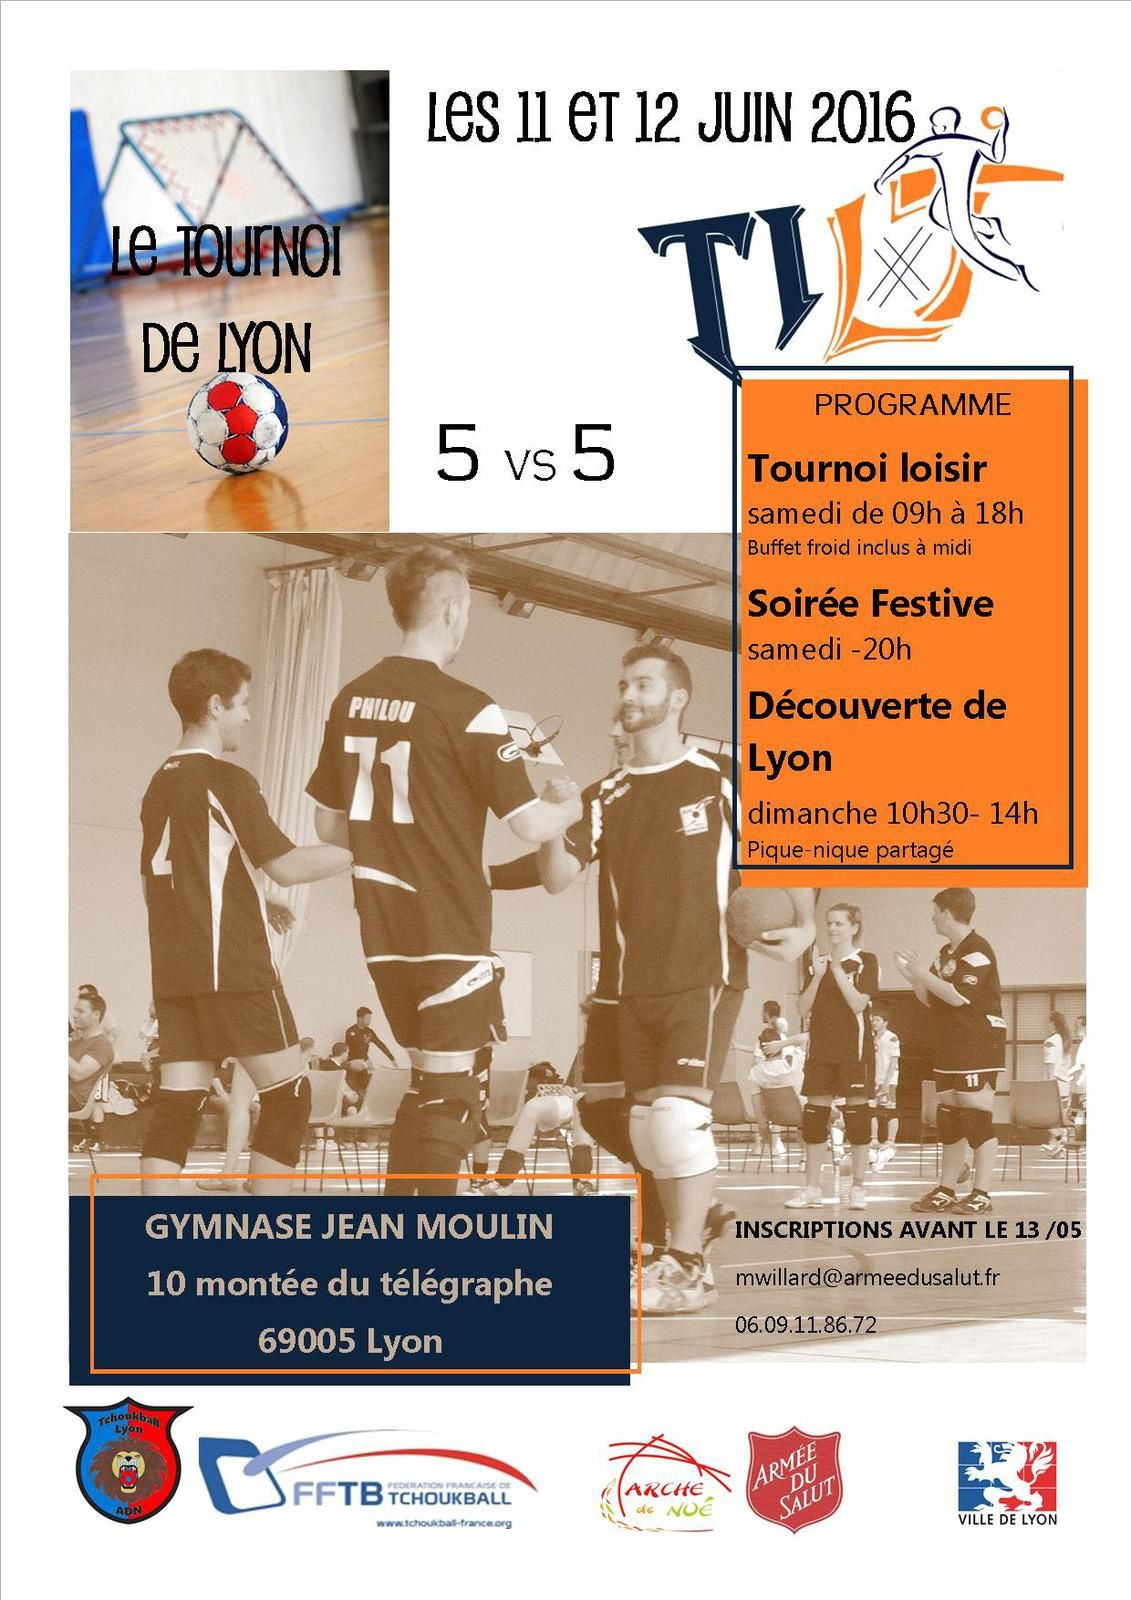 LE TOURNOI INTERNATIONAL DE TCHOUKBALL DE LYON A LIEU CE WEEK-END